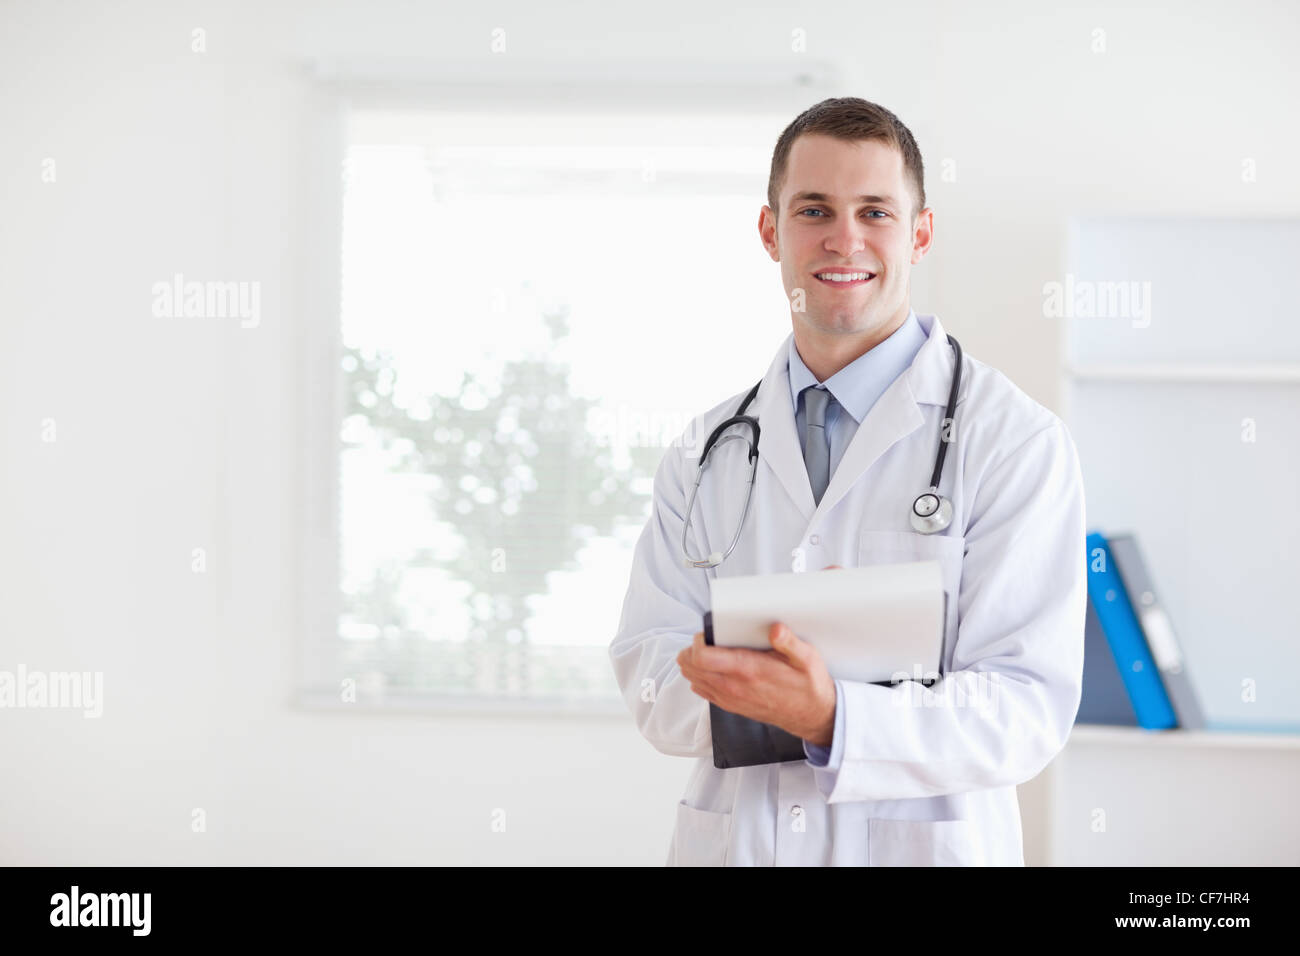 Doctor having good news for his patient - Stock Image